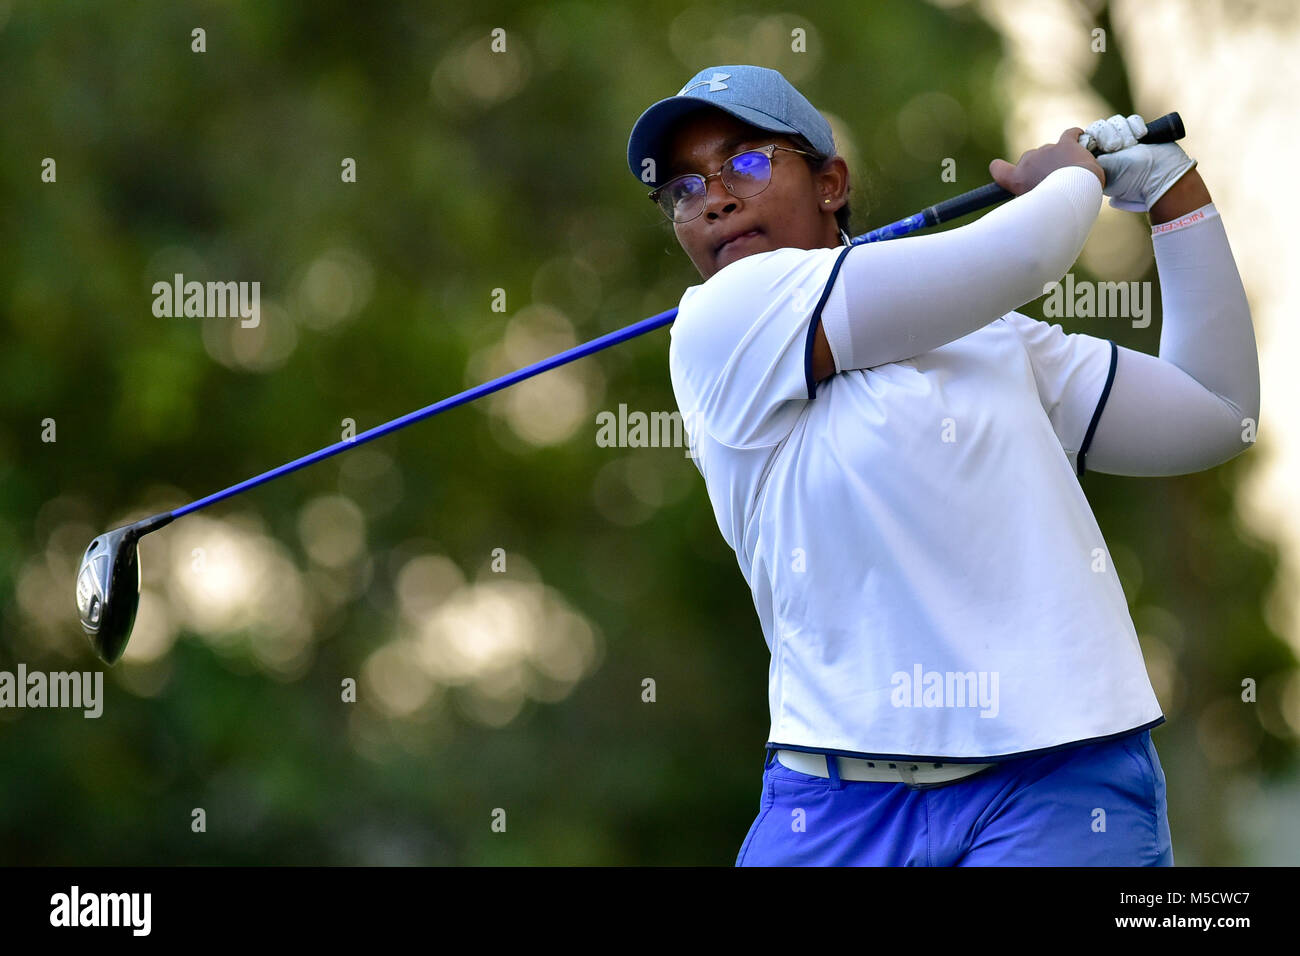 Danau, UKM Bangi - FEBRUARY 10: Caitlyn Ambrose  watches her tee shot on the 11th hole during Round One of the Danau - Stock Image